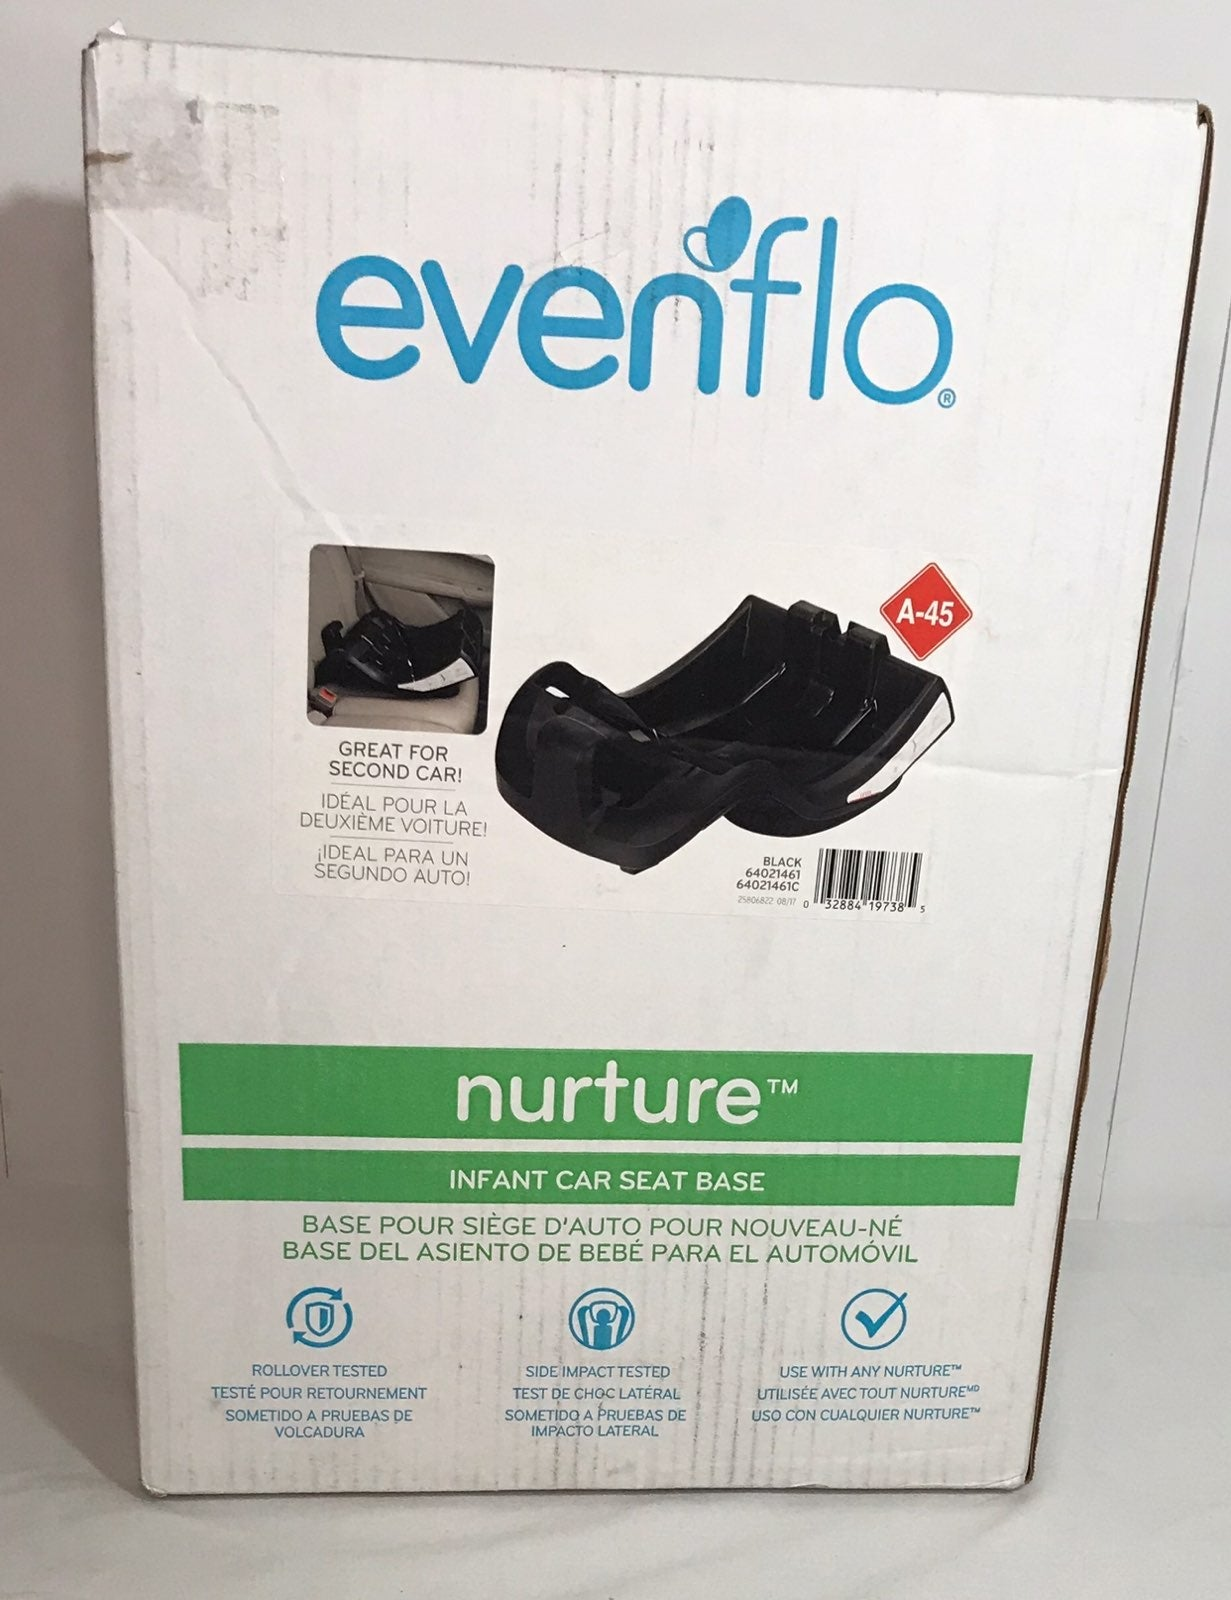 Evenflo Nurture Infant CarSeat Base